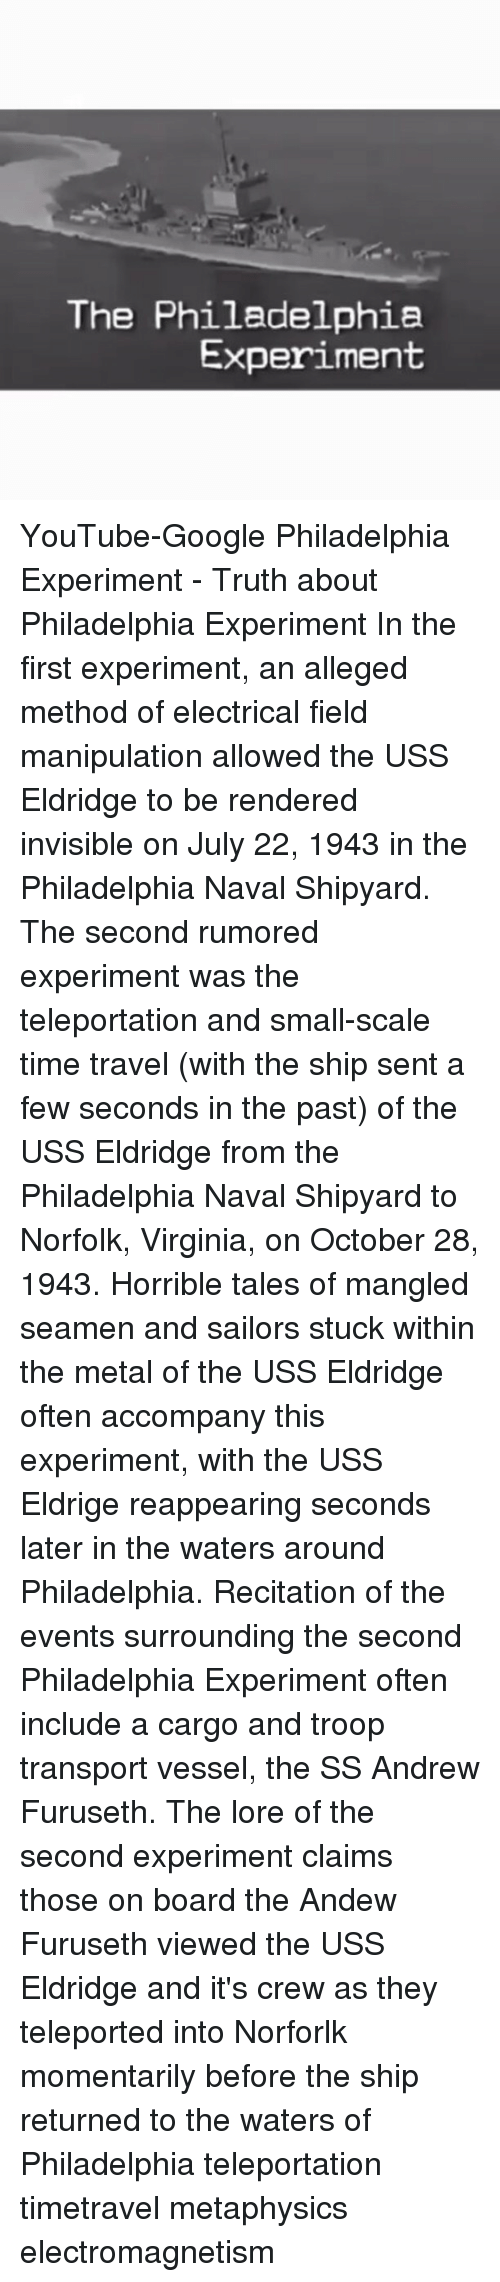 is the philadelphia experiment real essay In 1943 the philadelphia experiment allegedly gave a rumored naval experiment operated out of the philadelphia the real science of the time and the.